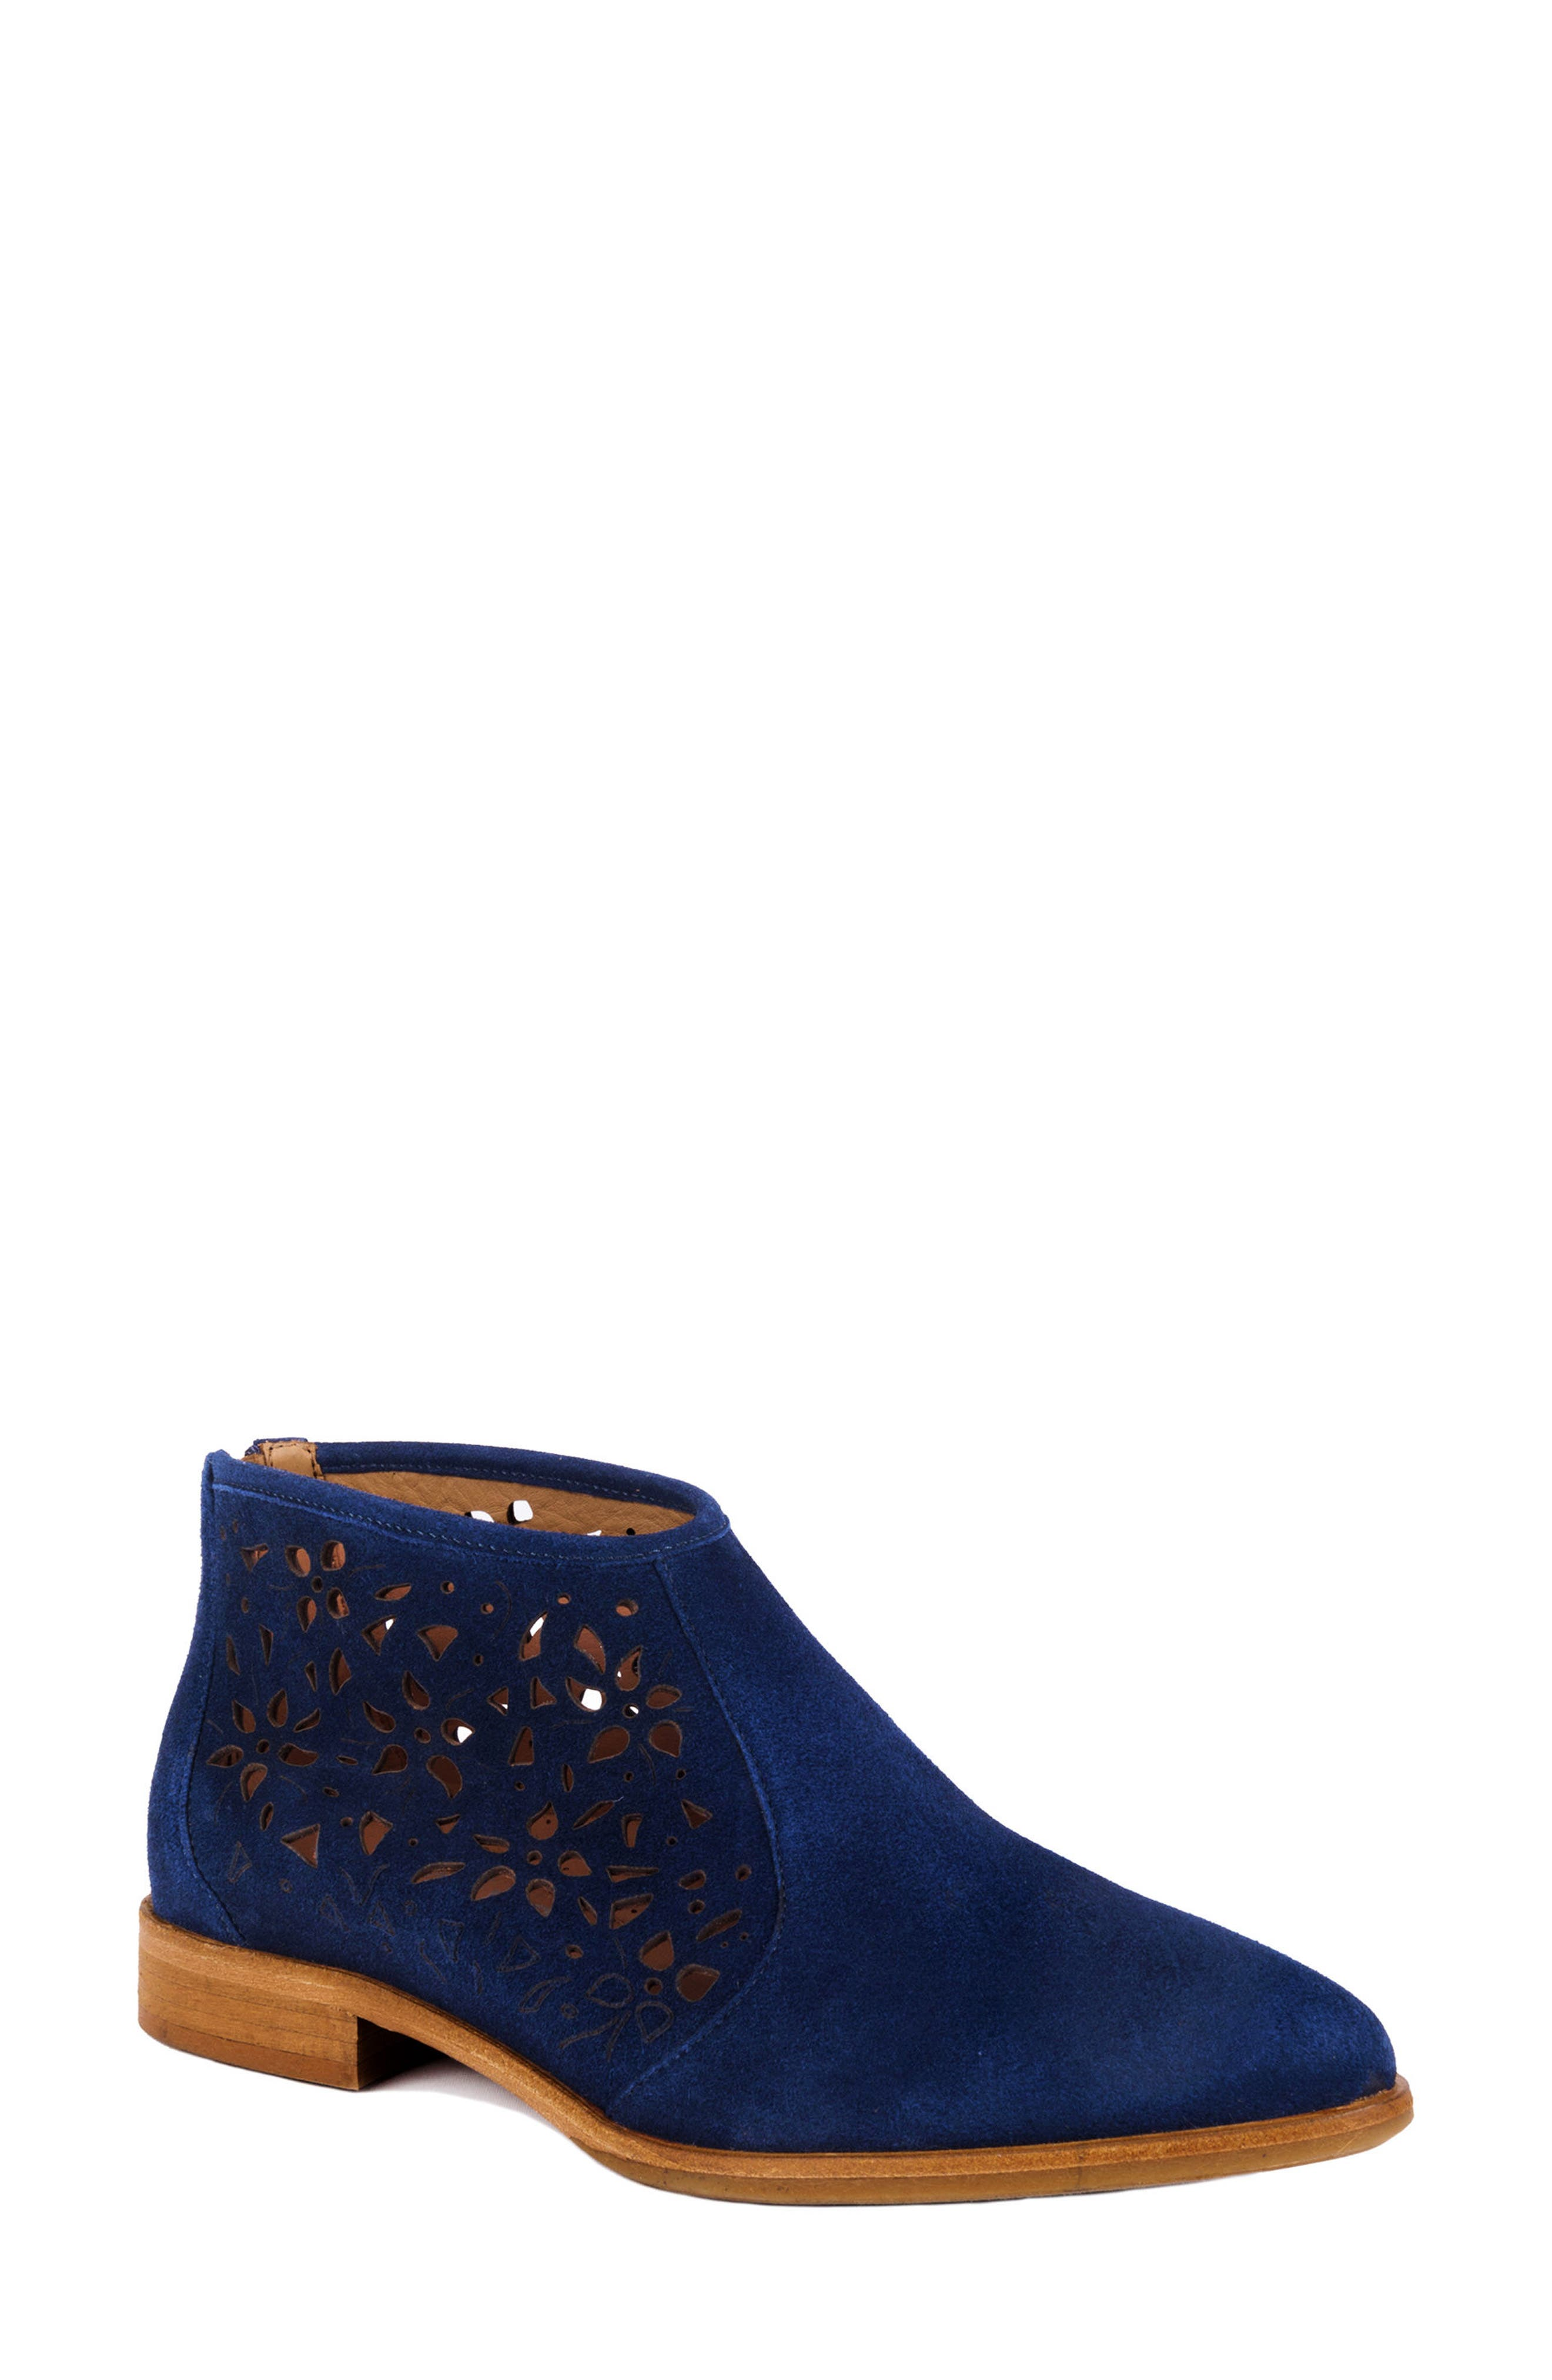 Perla Eyelet Detail Bootie,                             Main thumbnail 1, color,                             Navy